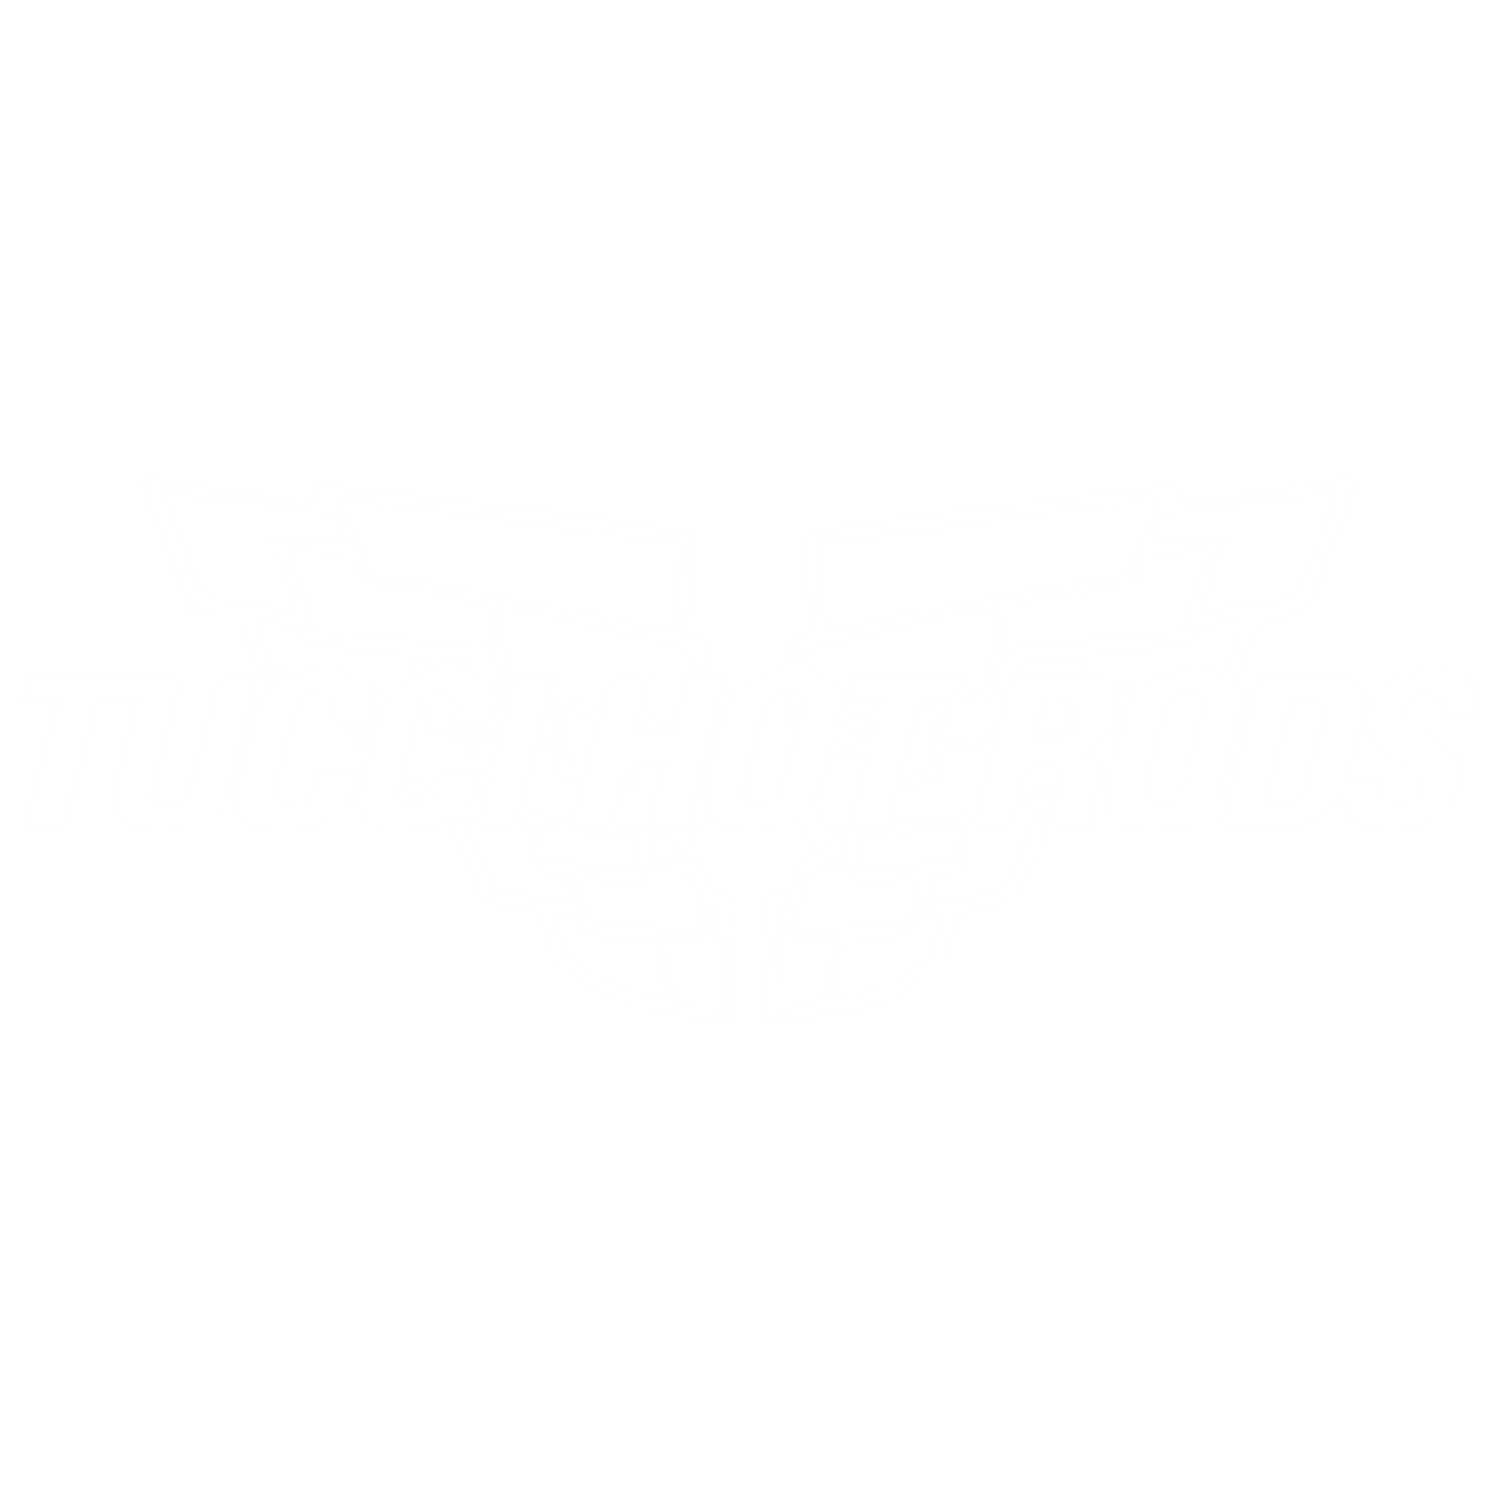 Tucci Hot Rods